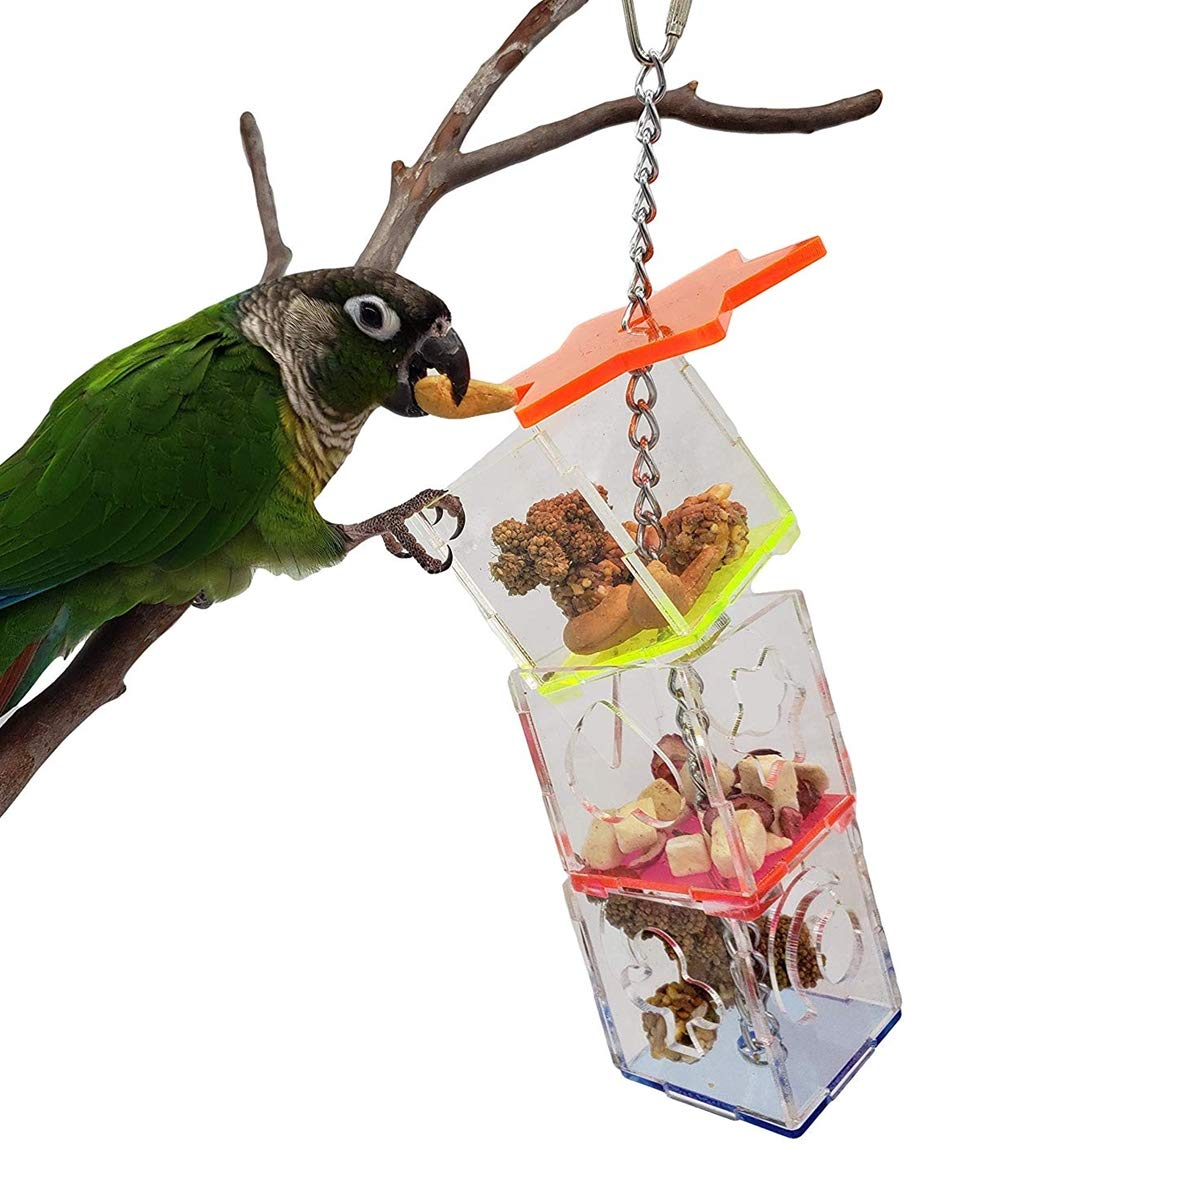 Bird Foraging Toy Acrylic Multi-Layer Feeder Box Parrot Climbing Bite for Parakeet Macaw Conure Cockatiel Lovebird Finch by Wontee